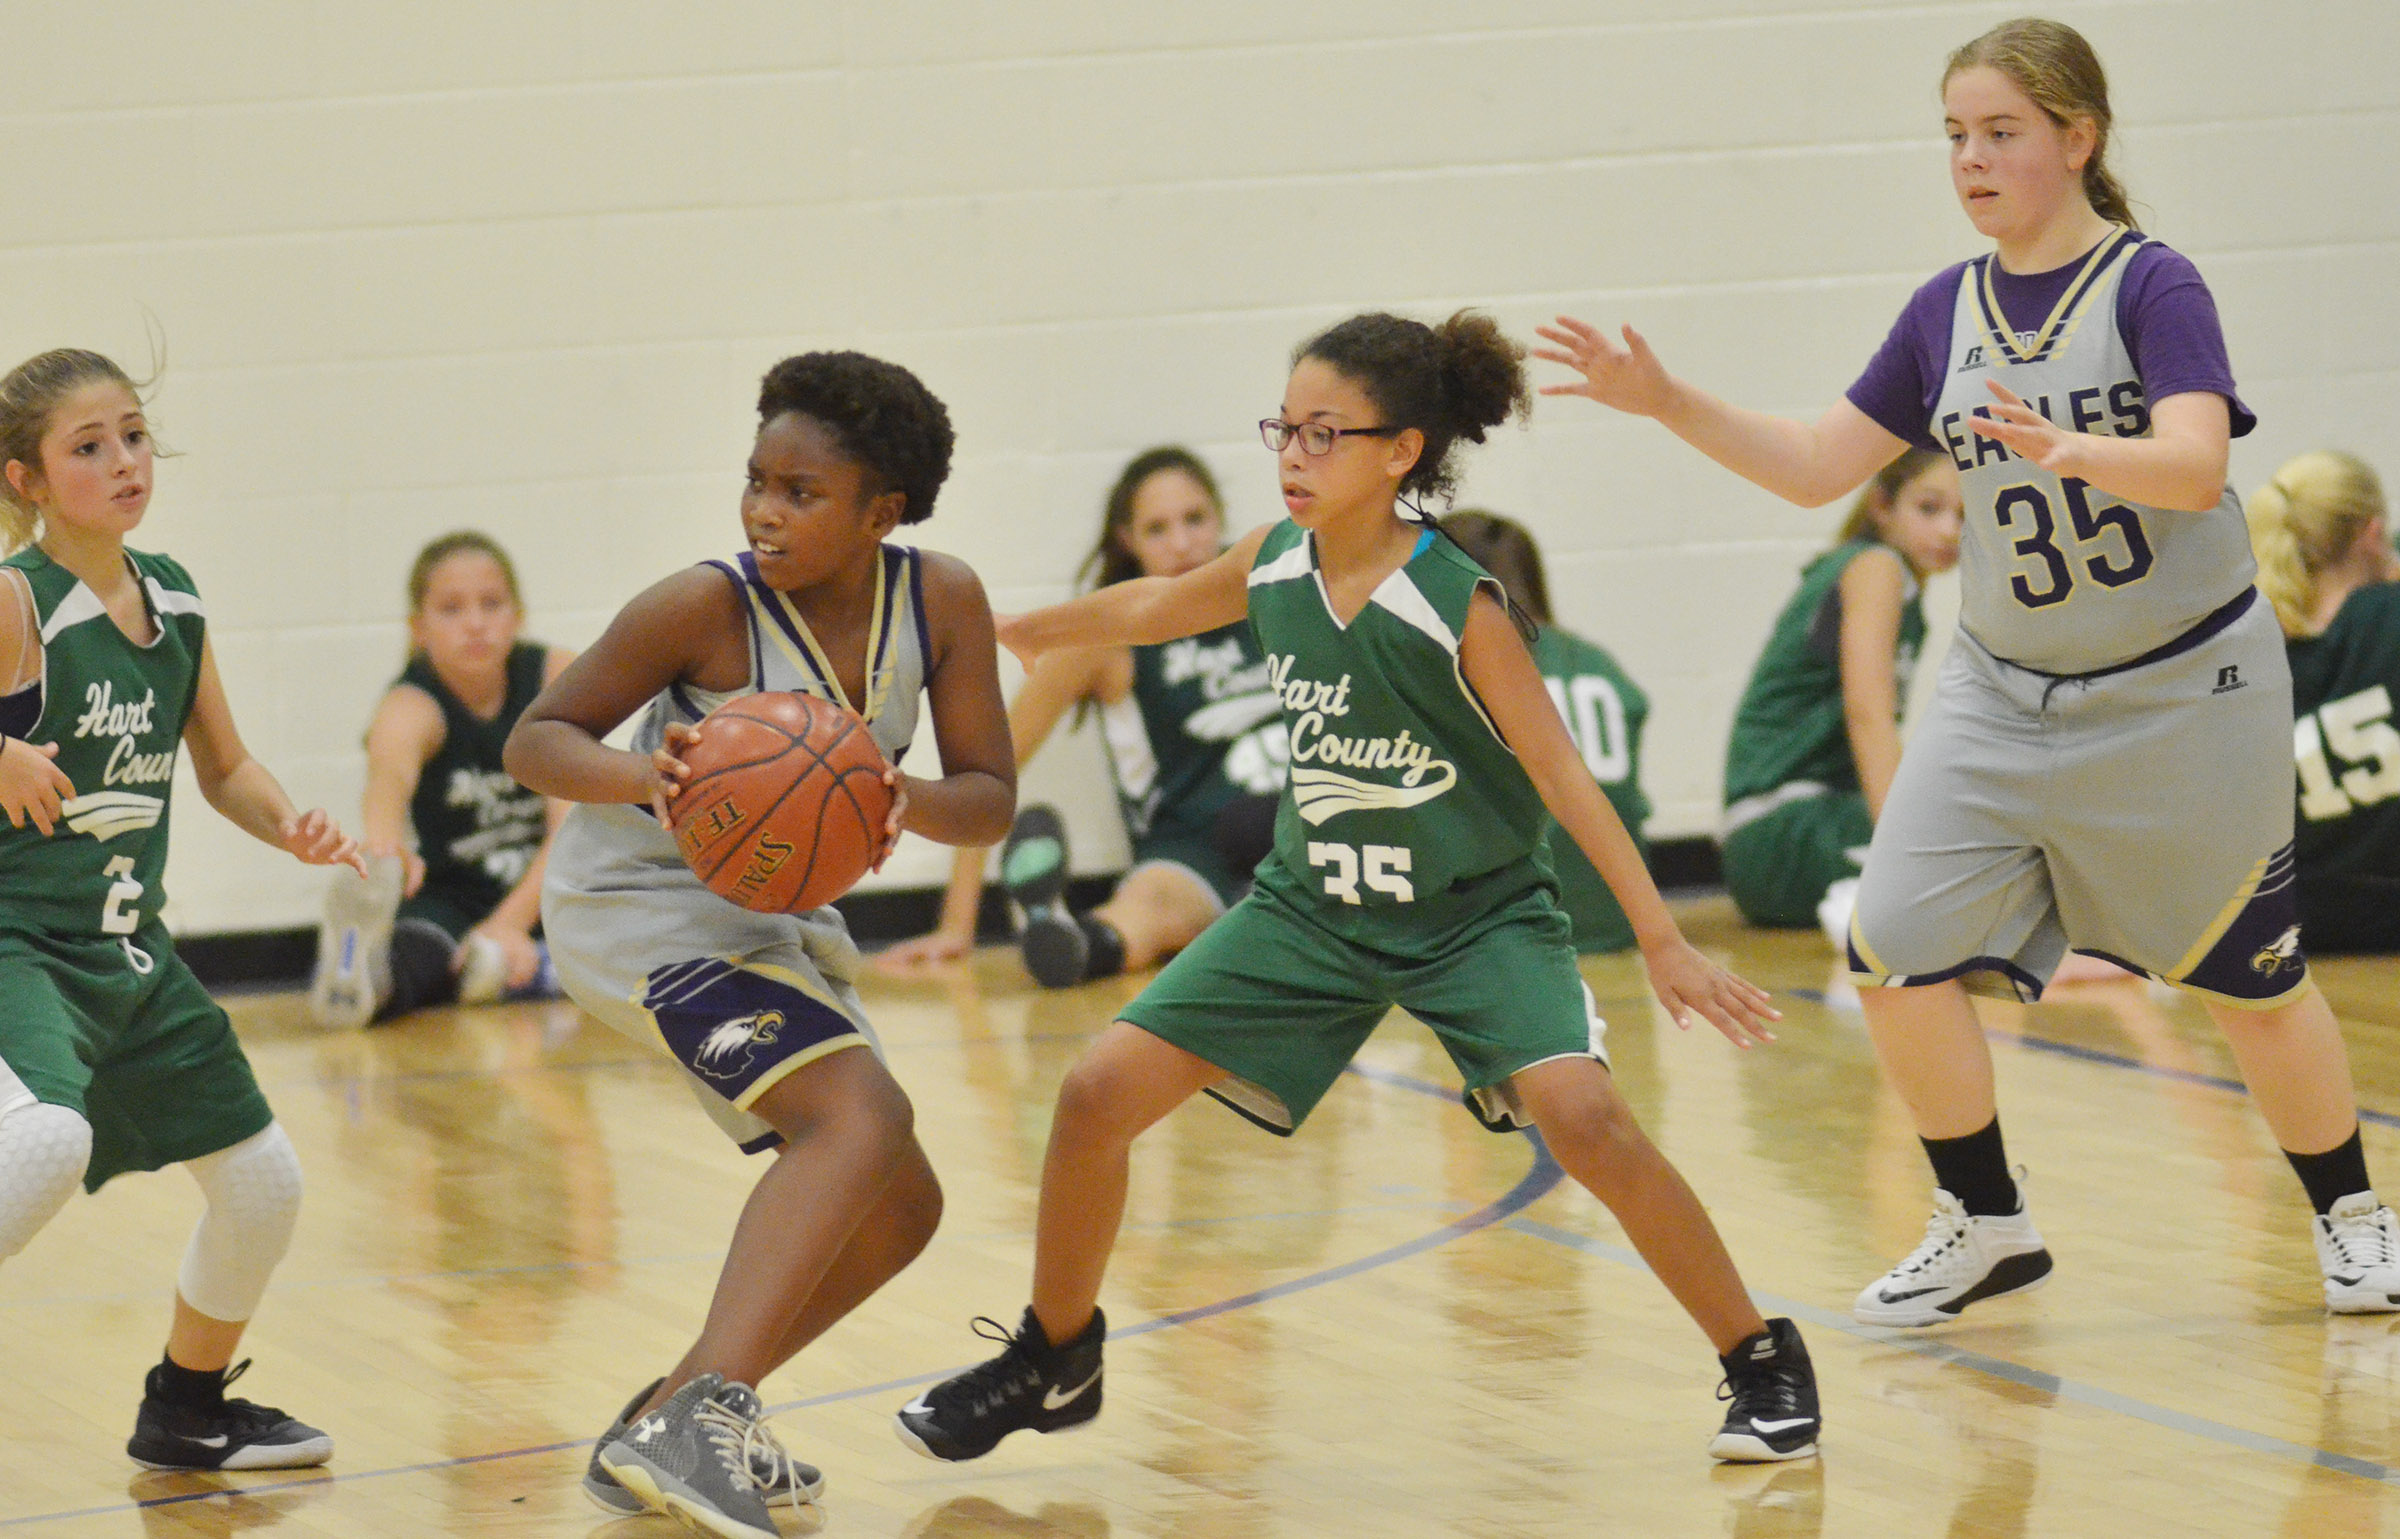 Campbellsville Elementary School fifth-grader Ta'Zaria Owens looks to pass, as CMS sixth-grader Layla Steen calls for the ball.